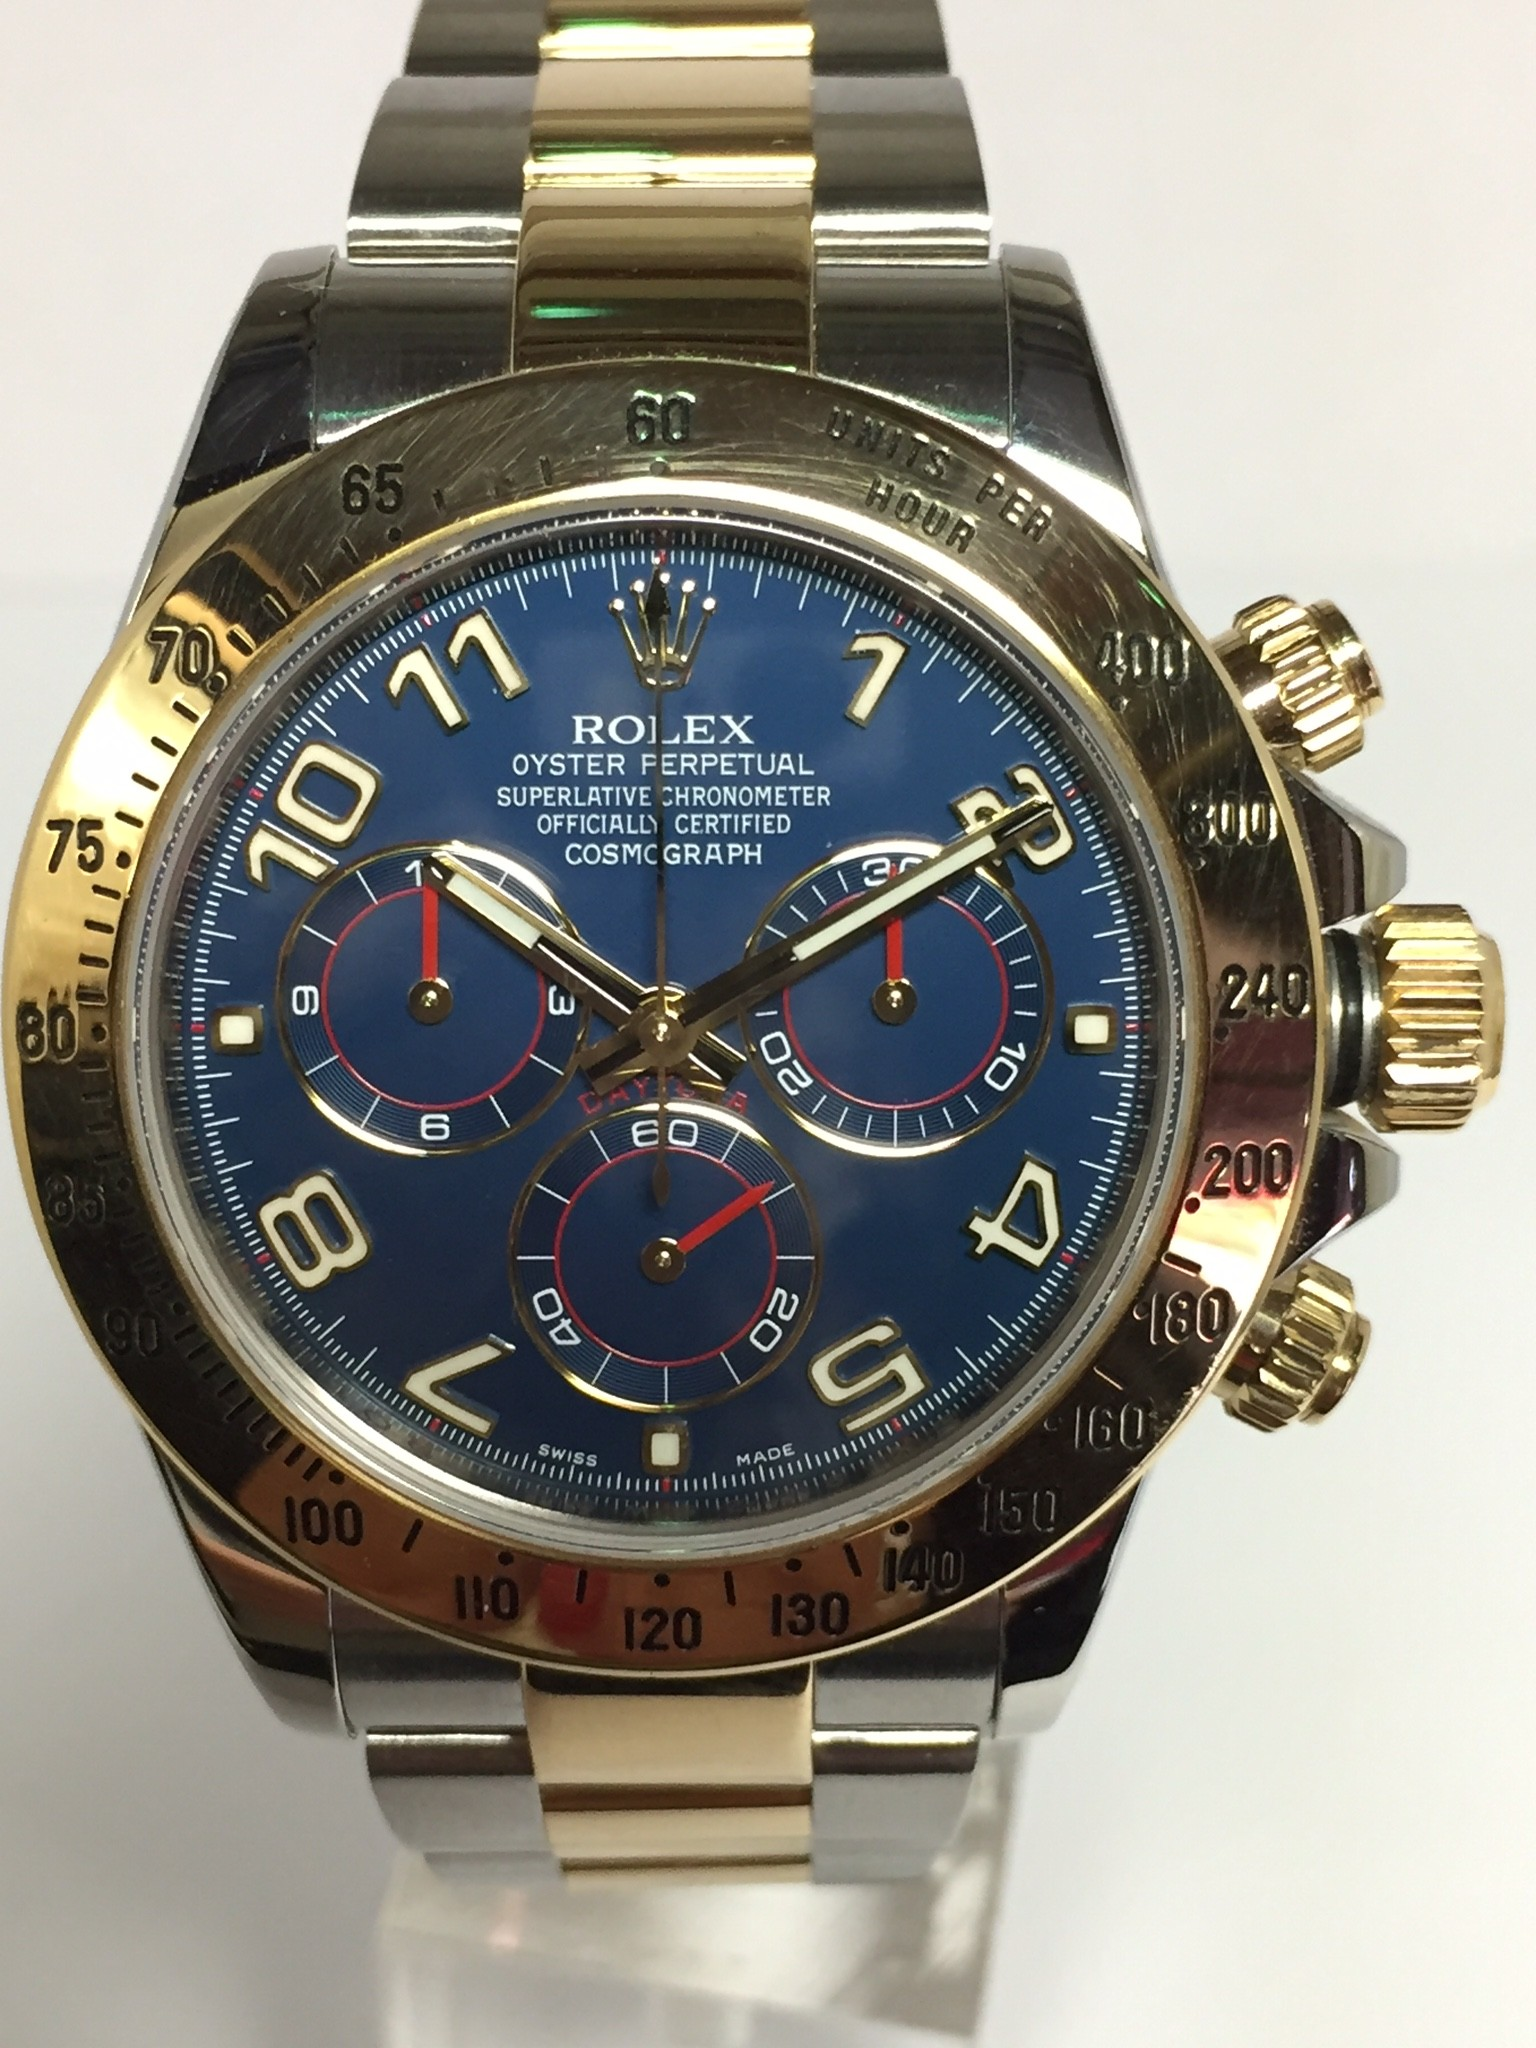 Rolex Oyster Perpetual Cosmosgraph Daytona Ref: 116523